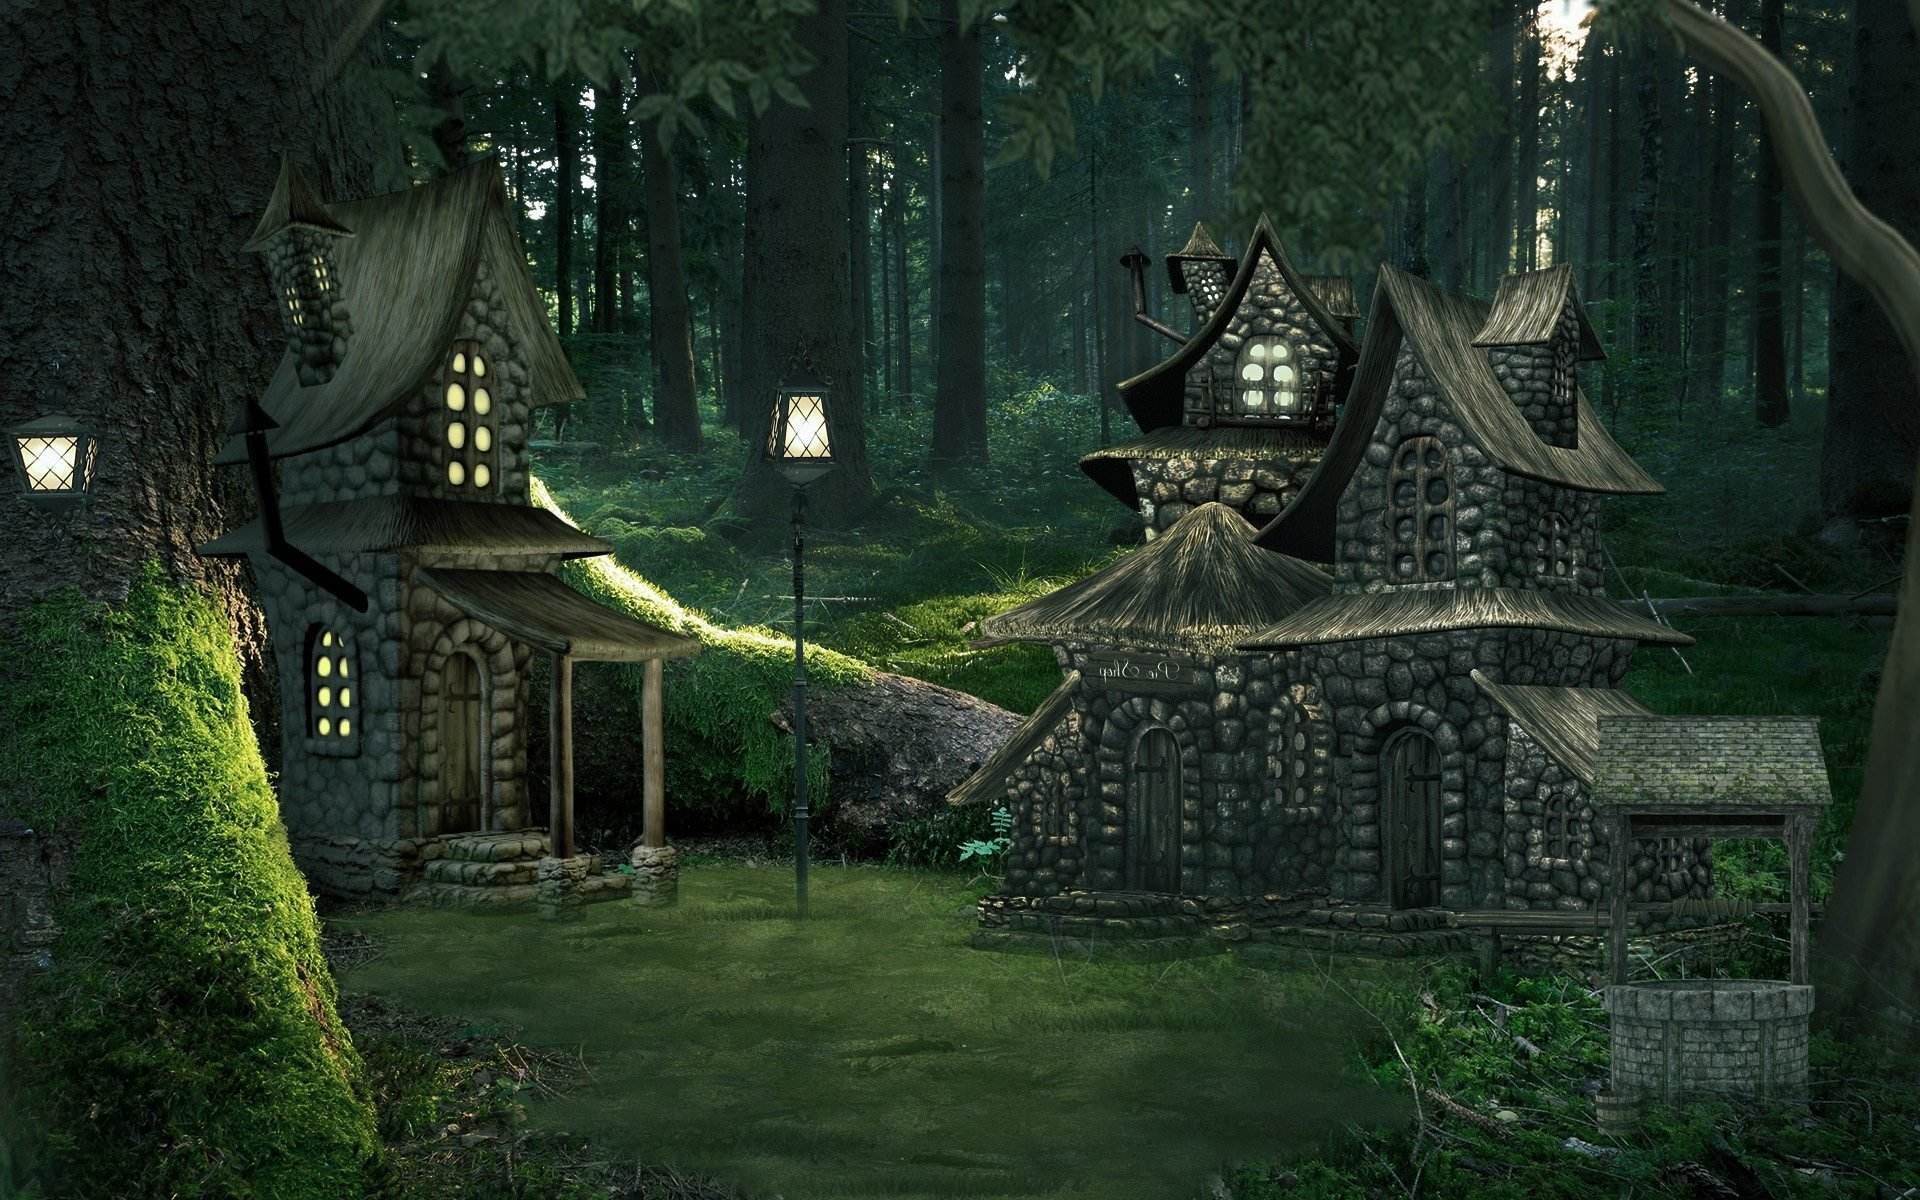 cottages in enchanted forest hd wallpaper background